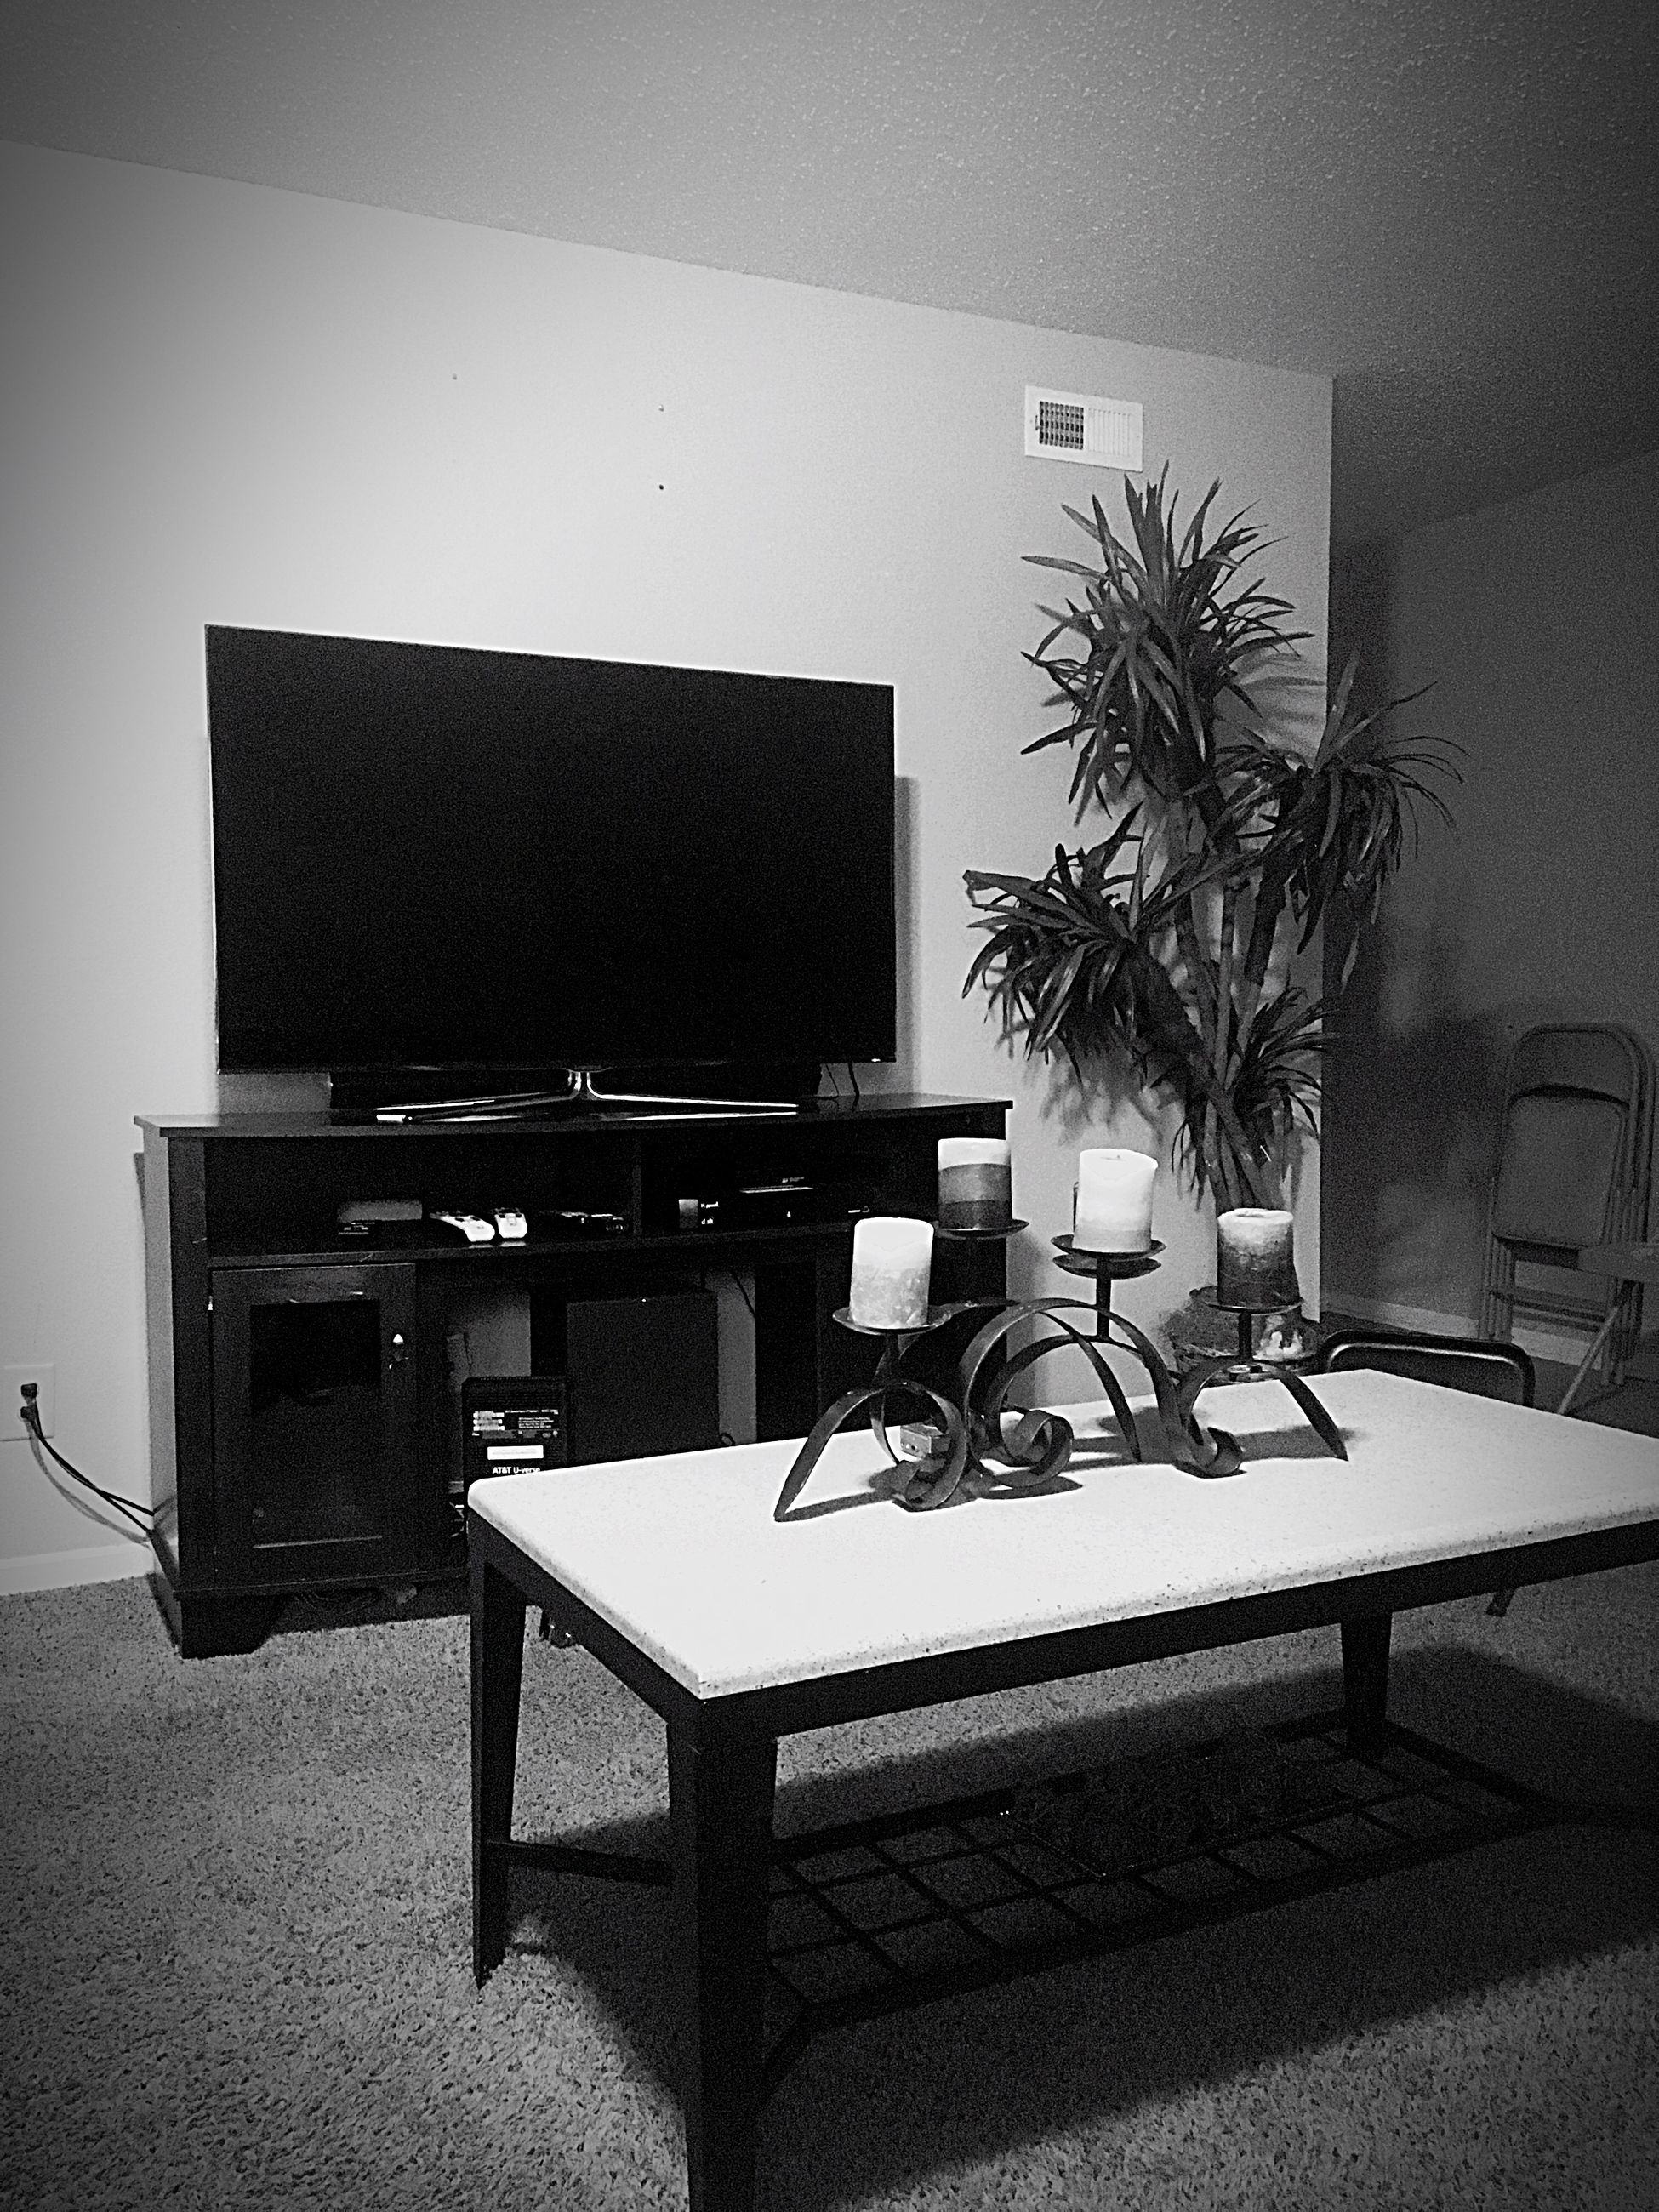 table, indoors, home interior, chair, absence, no people, desk, potted plant, furniture, computer, technology, living room, home showcase interior, domestic room, cabinet, day